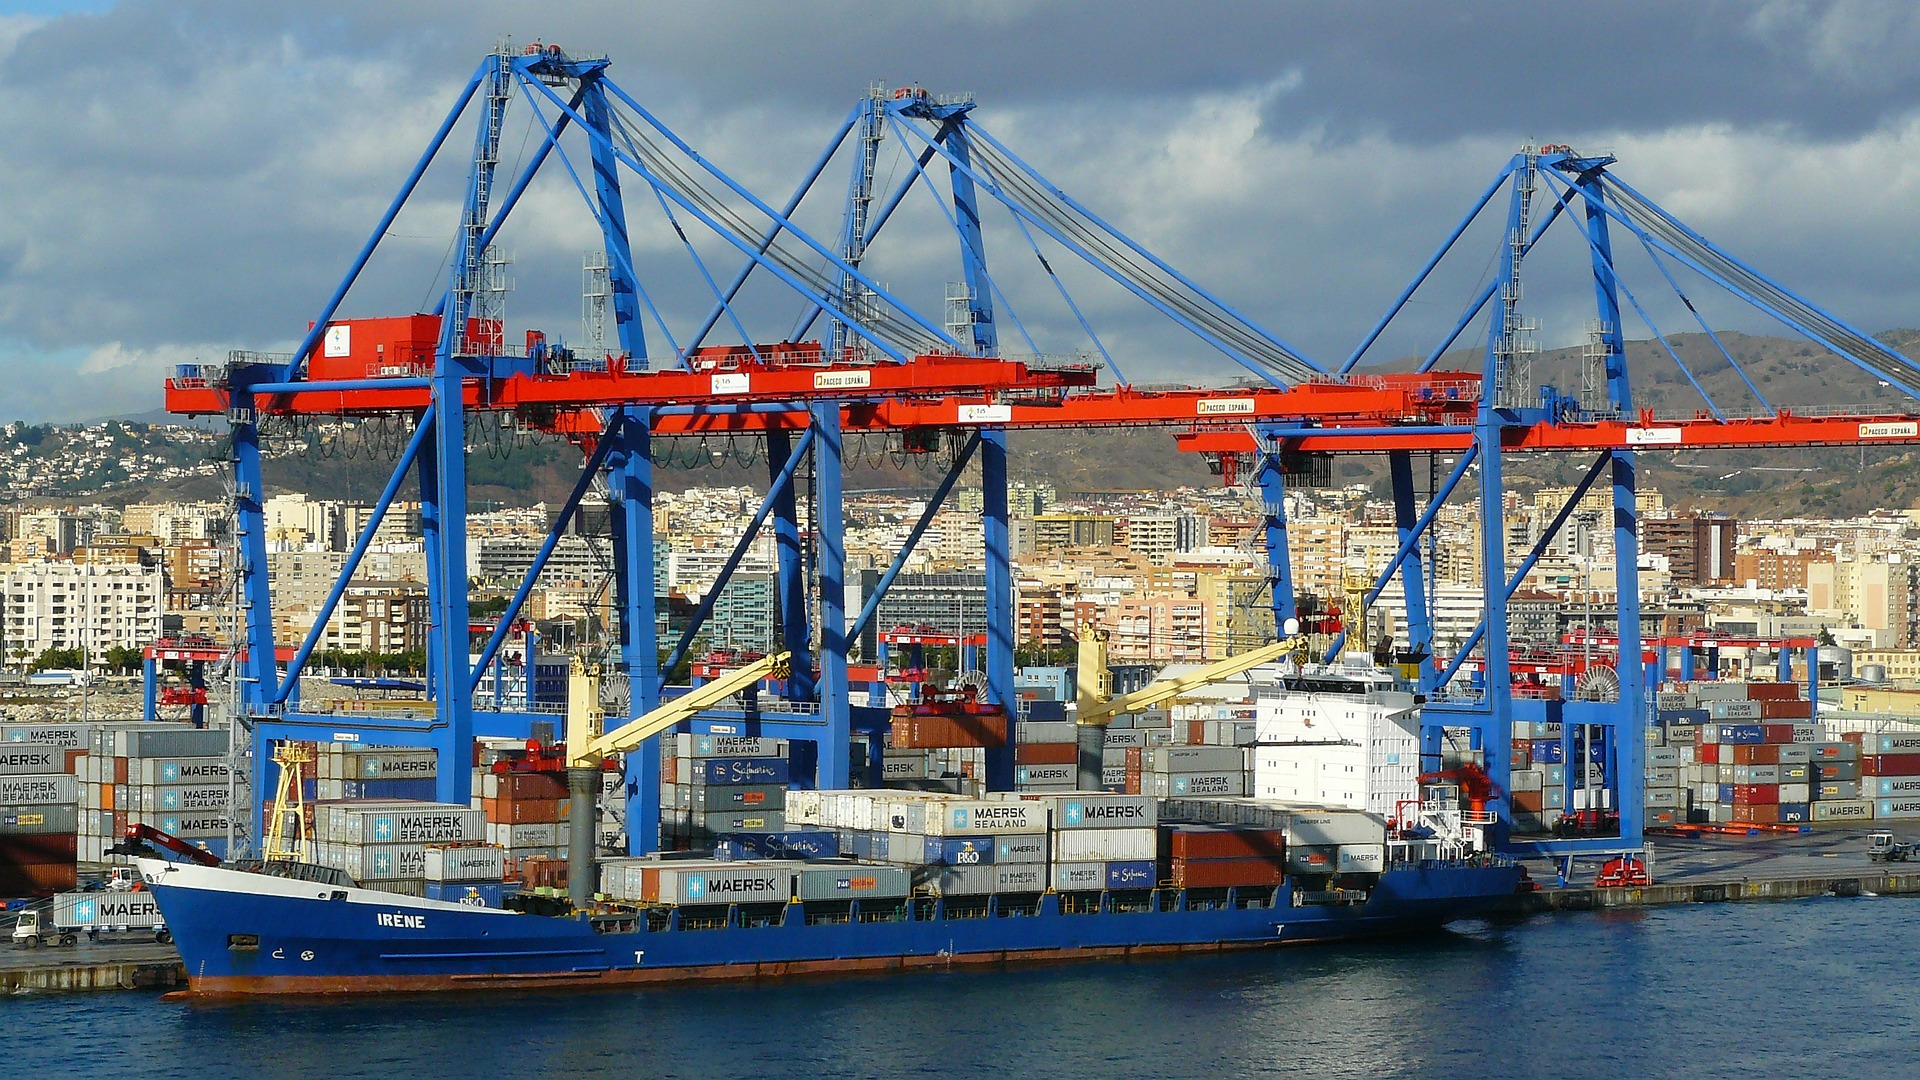 American seaports provide thousands of contracting opportunities